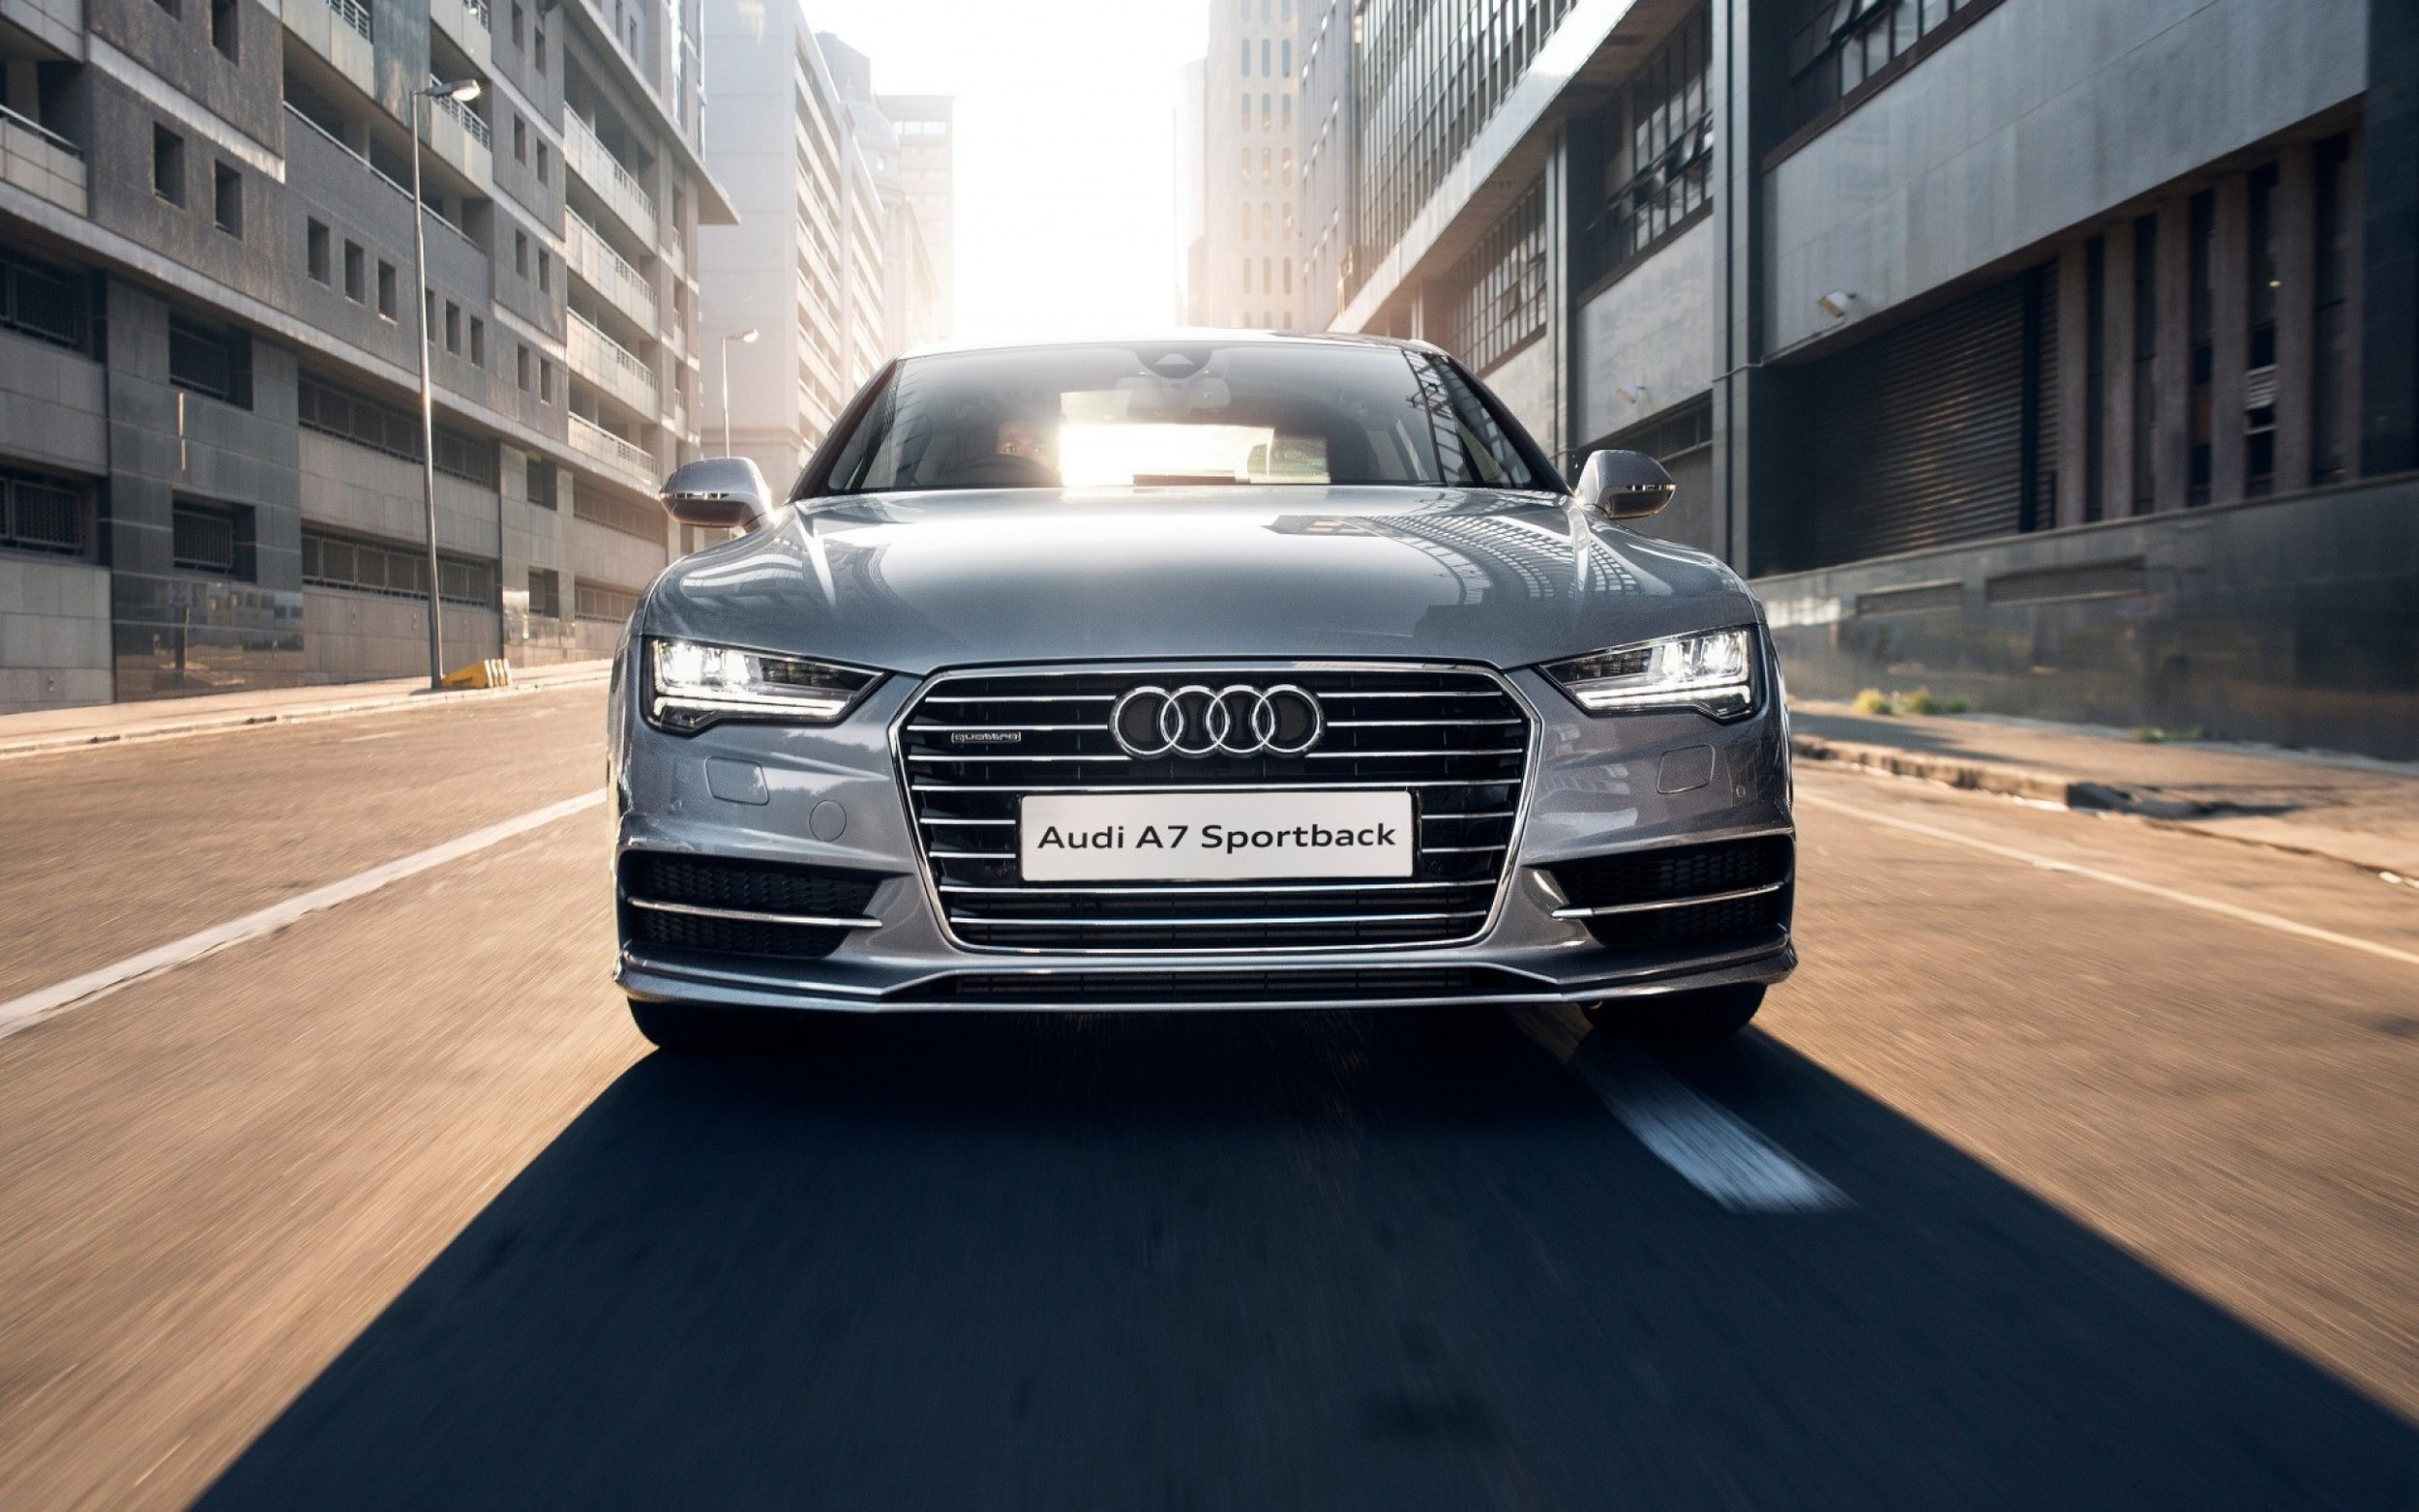 car-audi-a7-4k-wallpaper.jpg